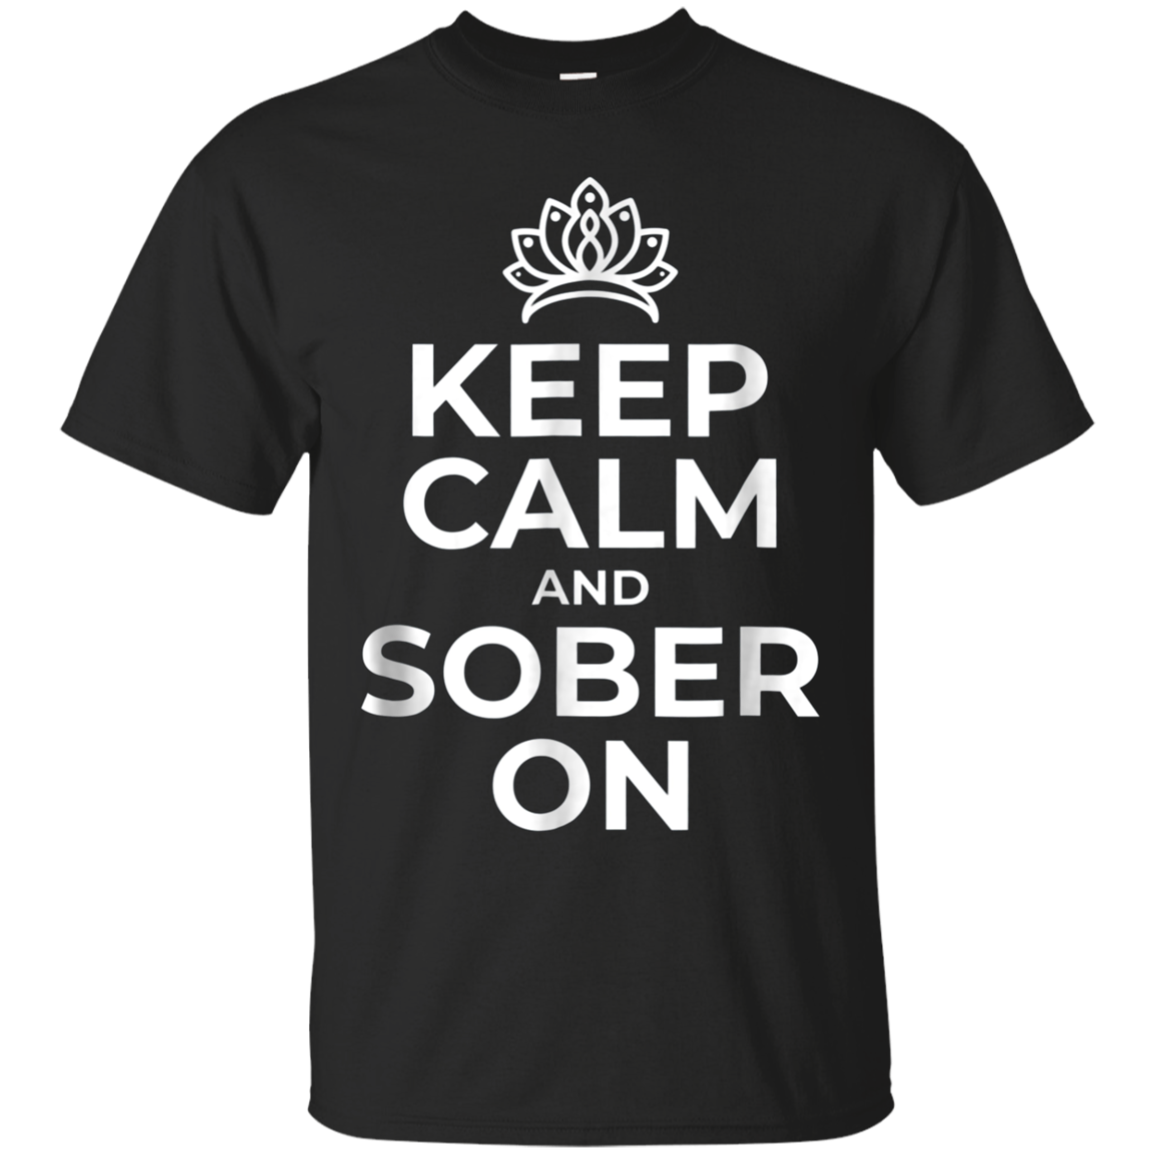 Keep Calm and Sober On T Shirt Queen Tiarra